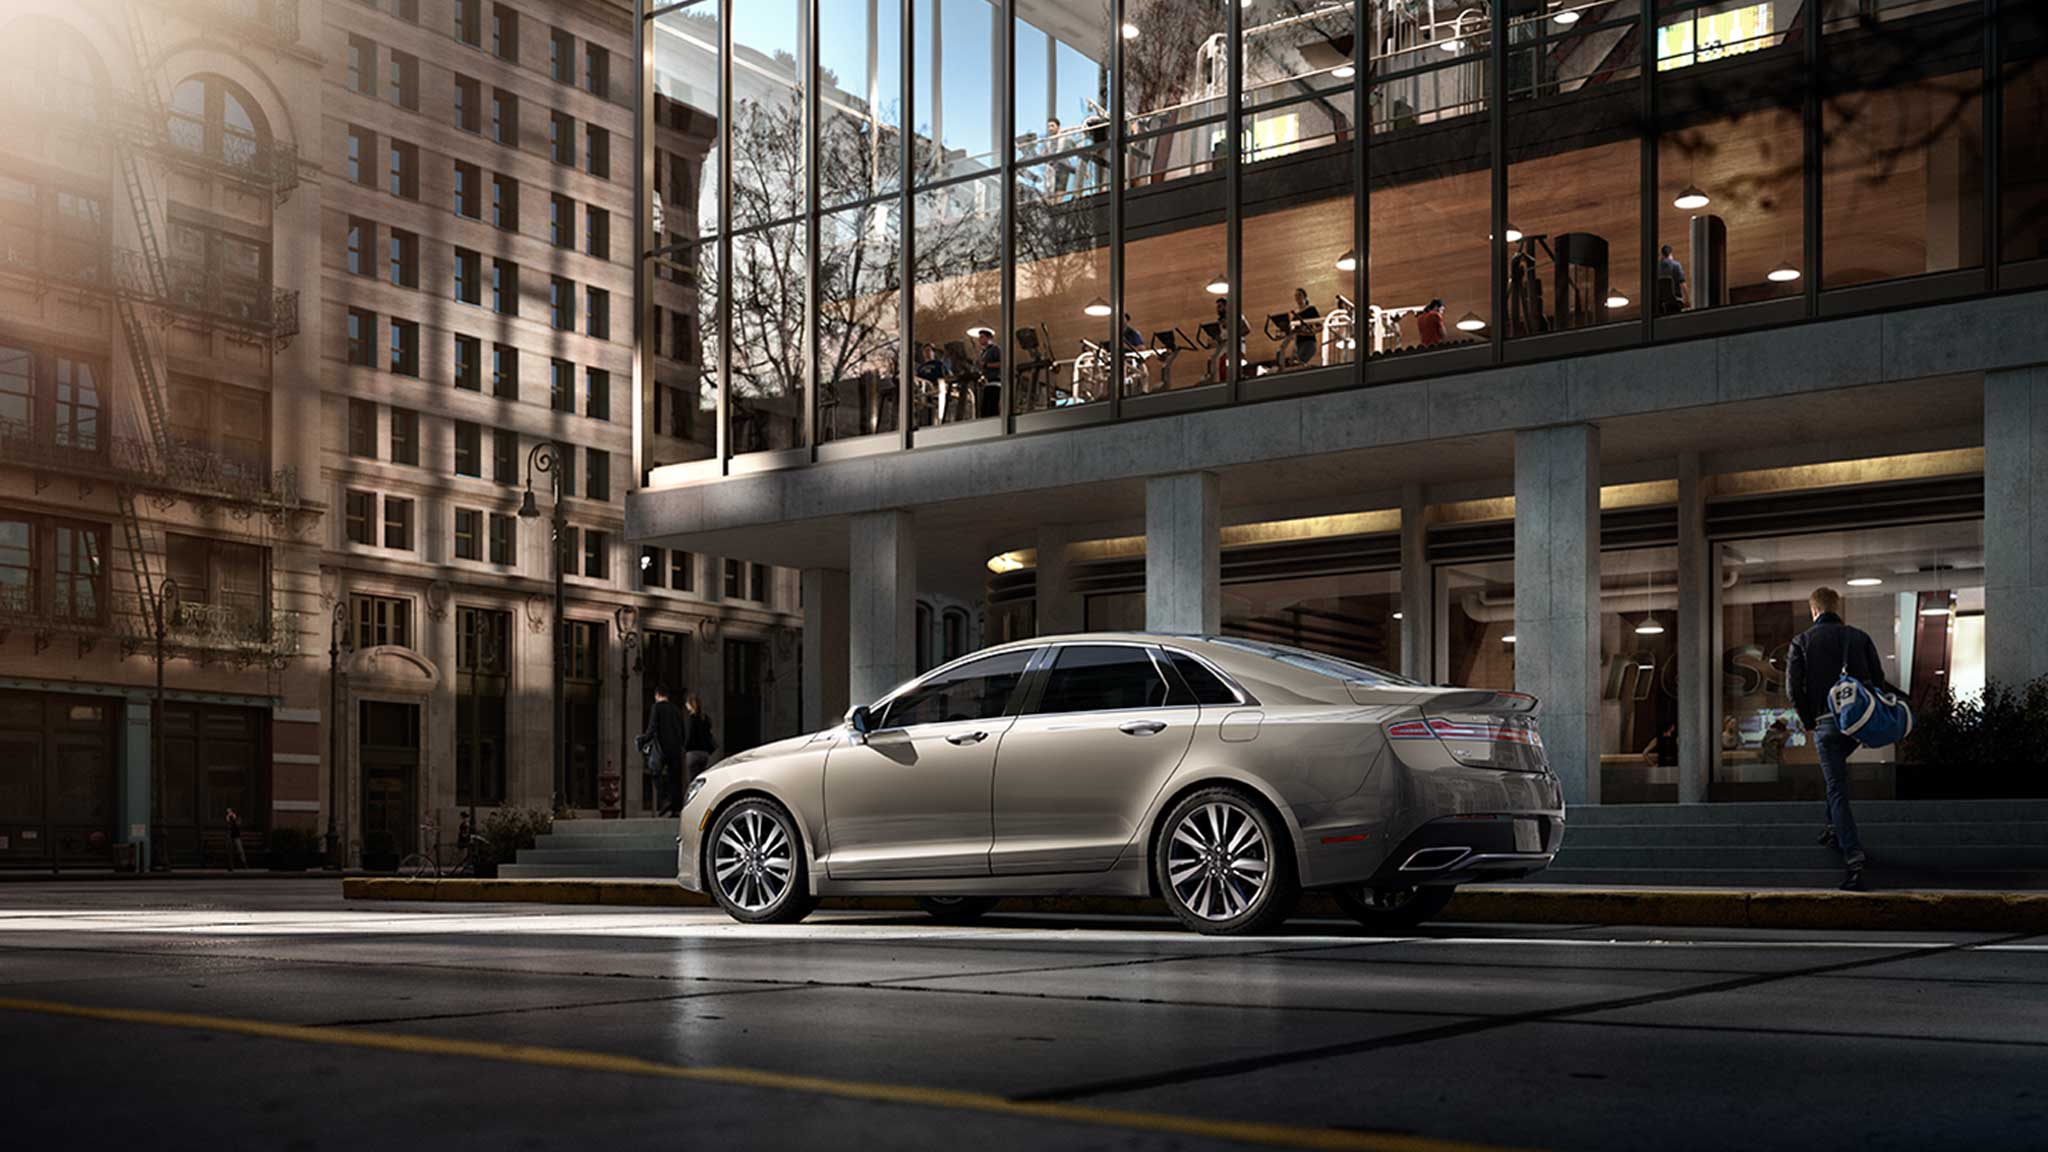 New Lincoln MKZ Exterior image 1